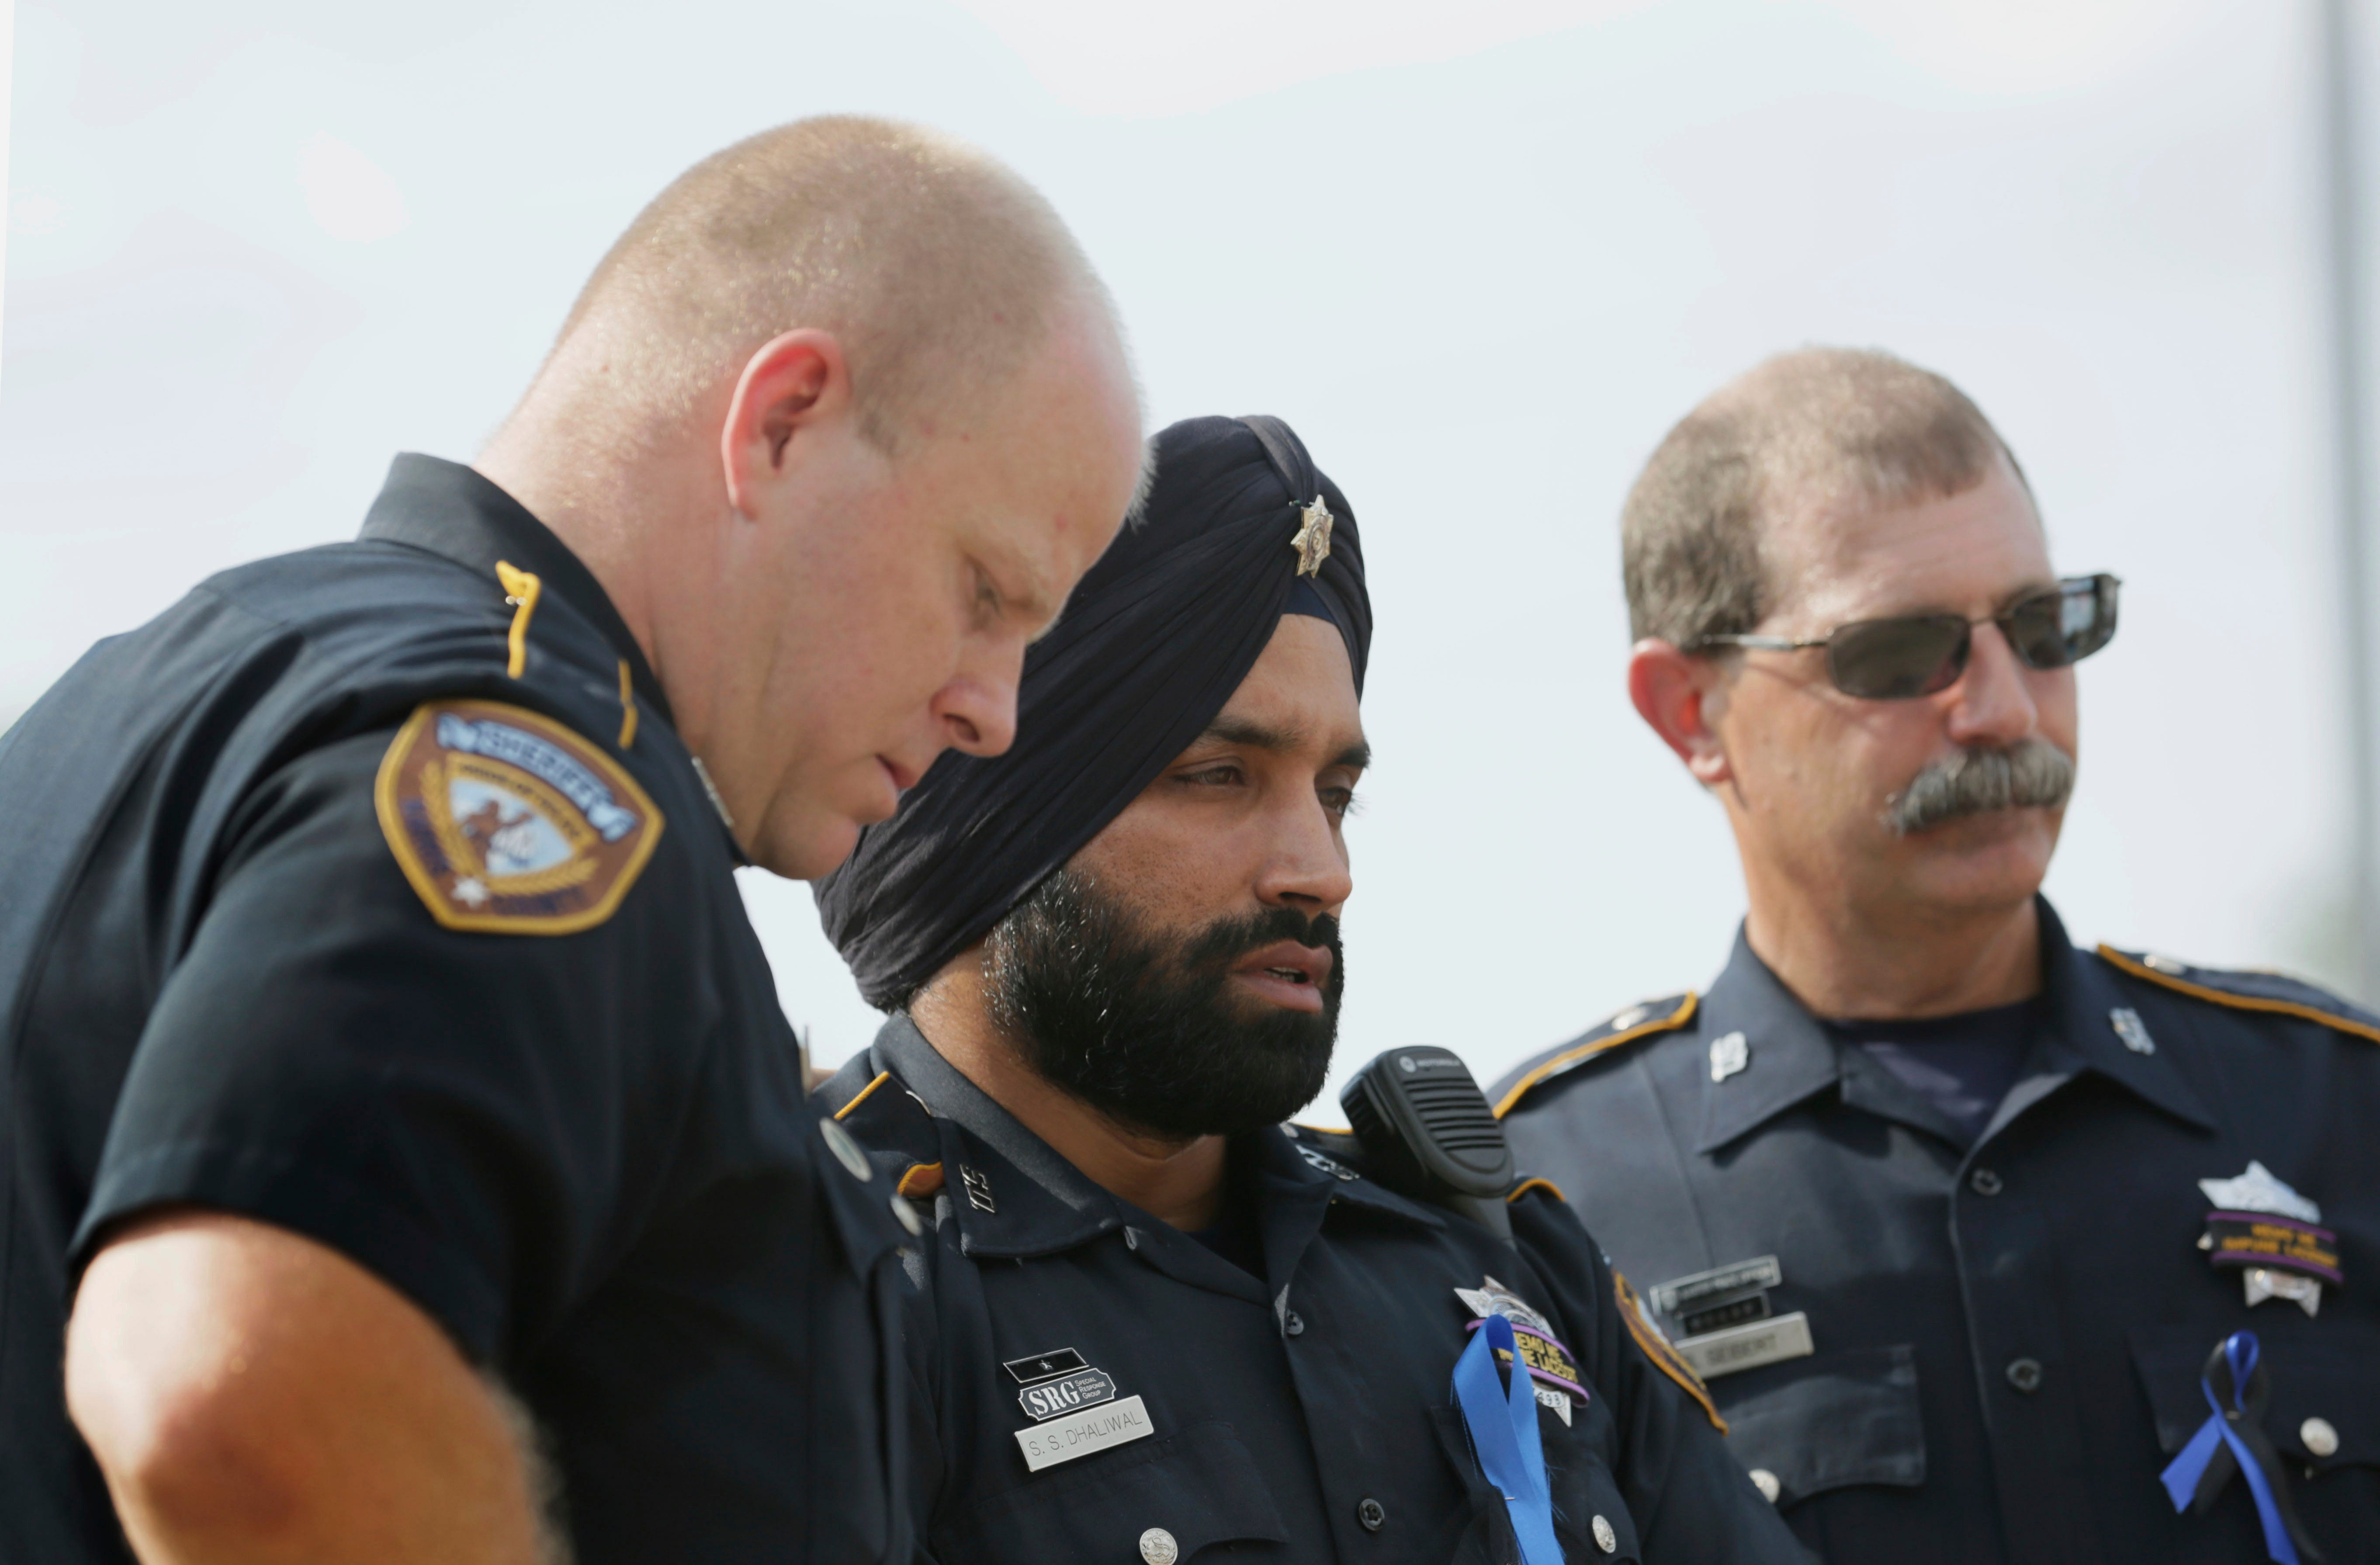 Trailblazing Texas deputy who was first local Sikh officer 'ruthlessly' killed during traffic stop